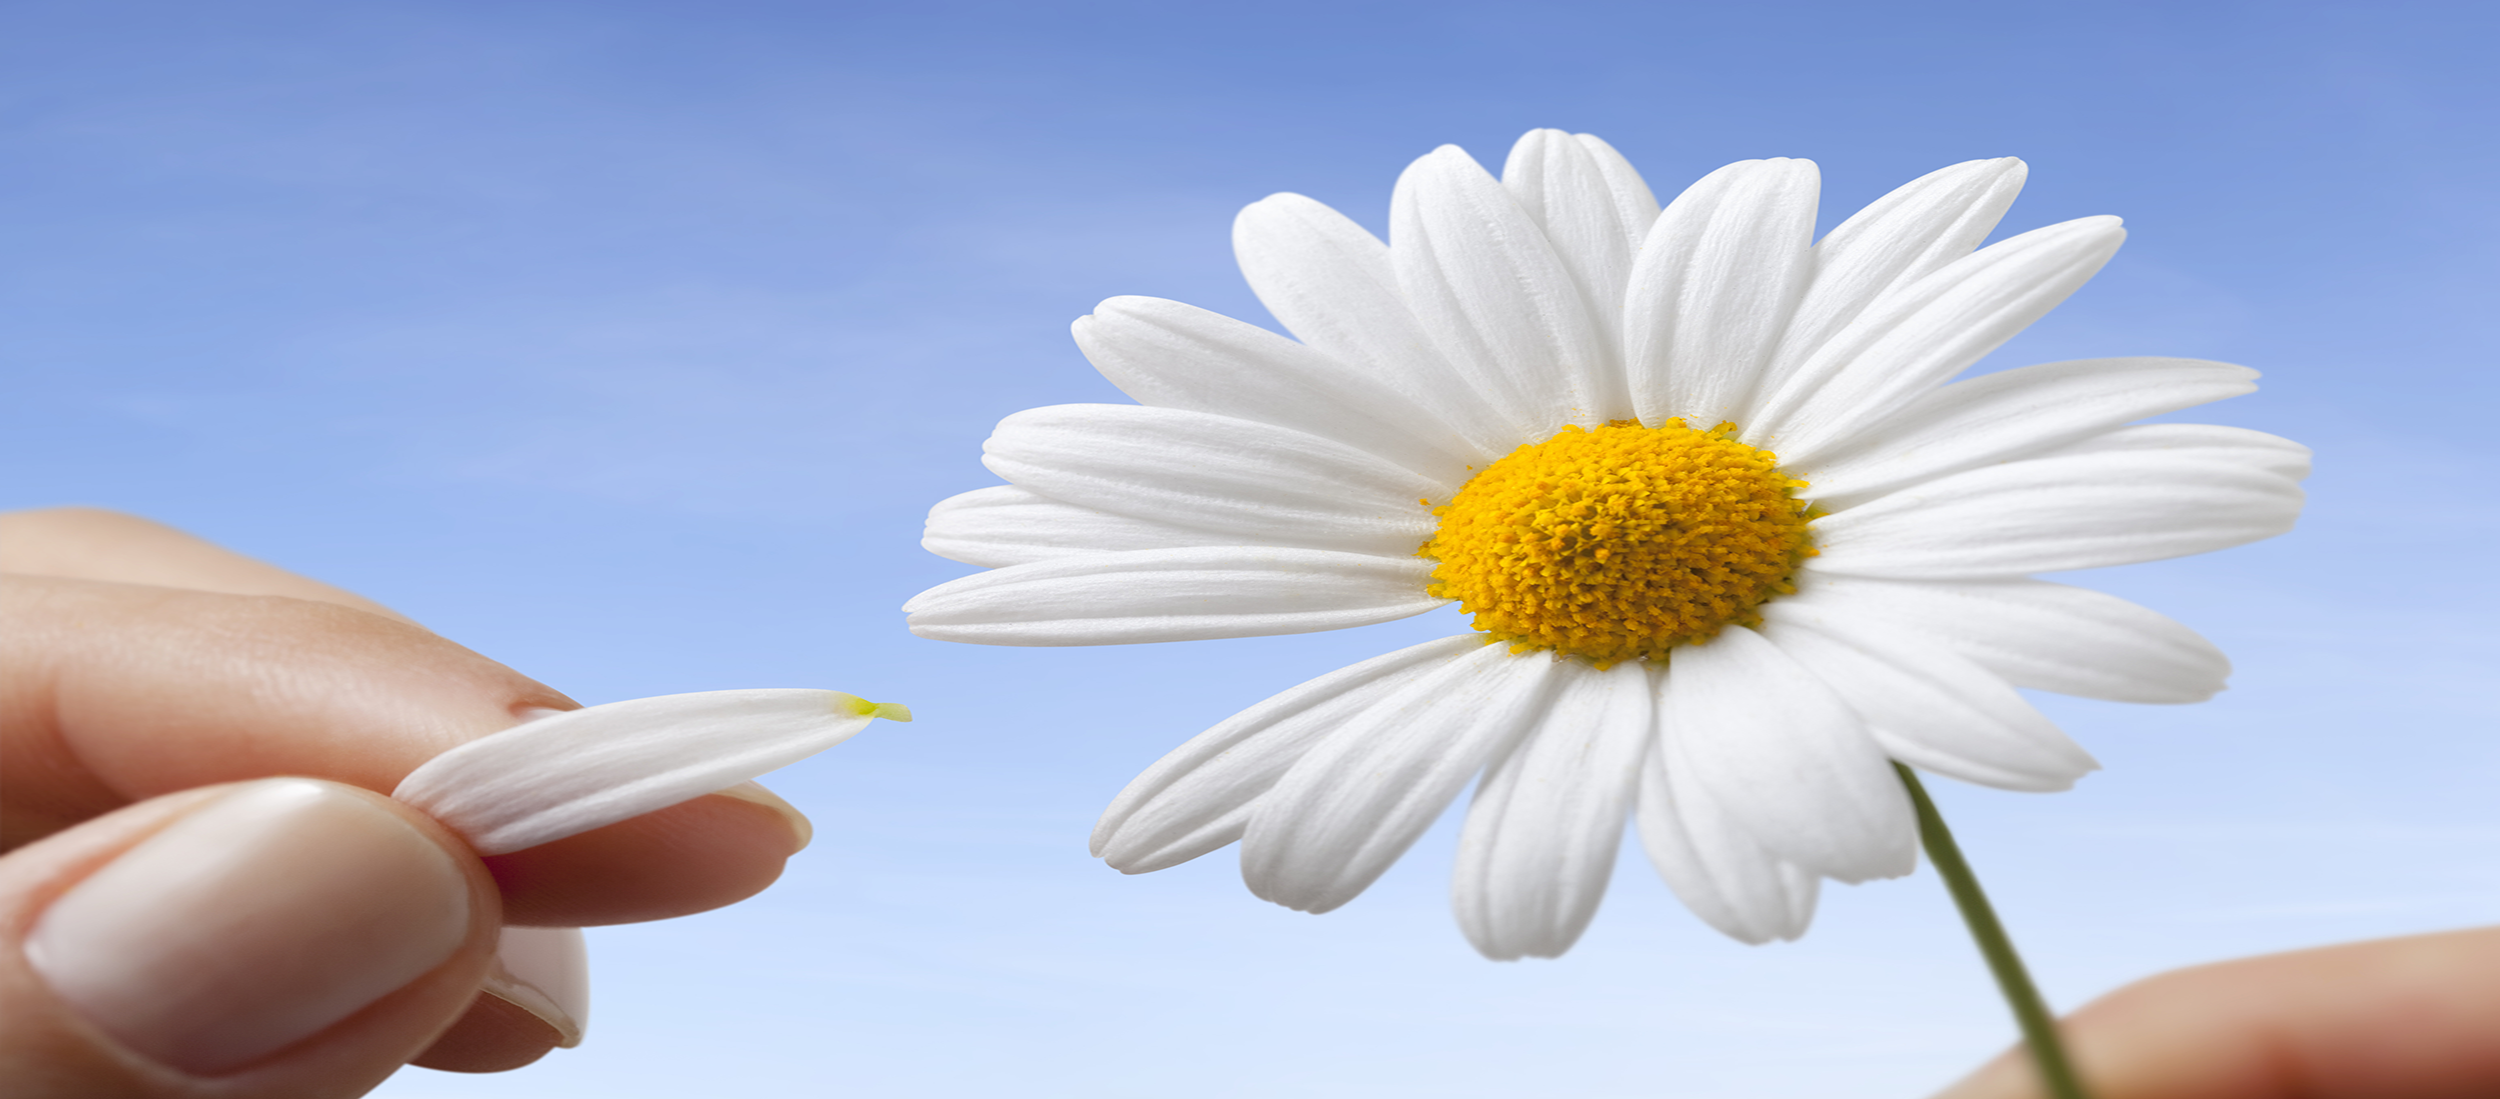 HeLovesMeDaisy_header.png